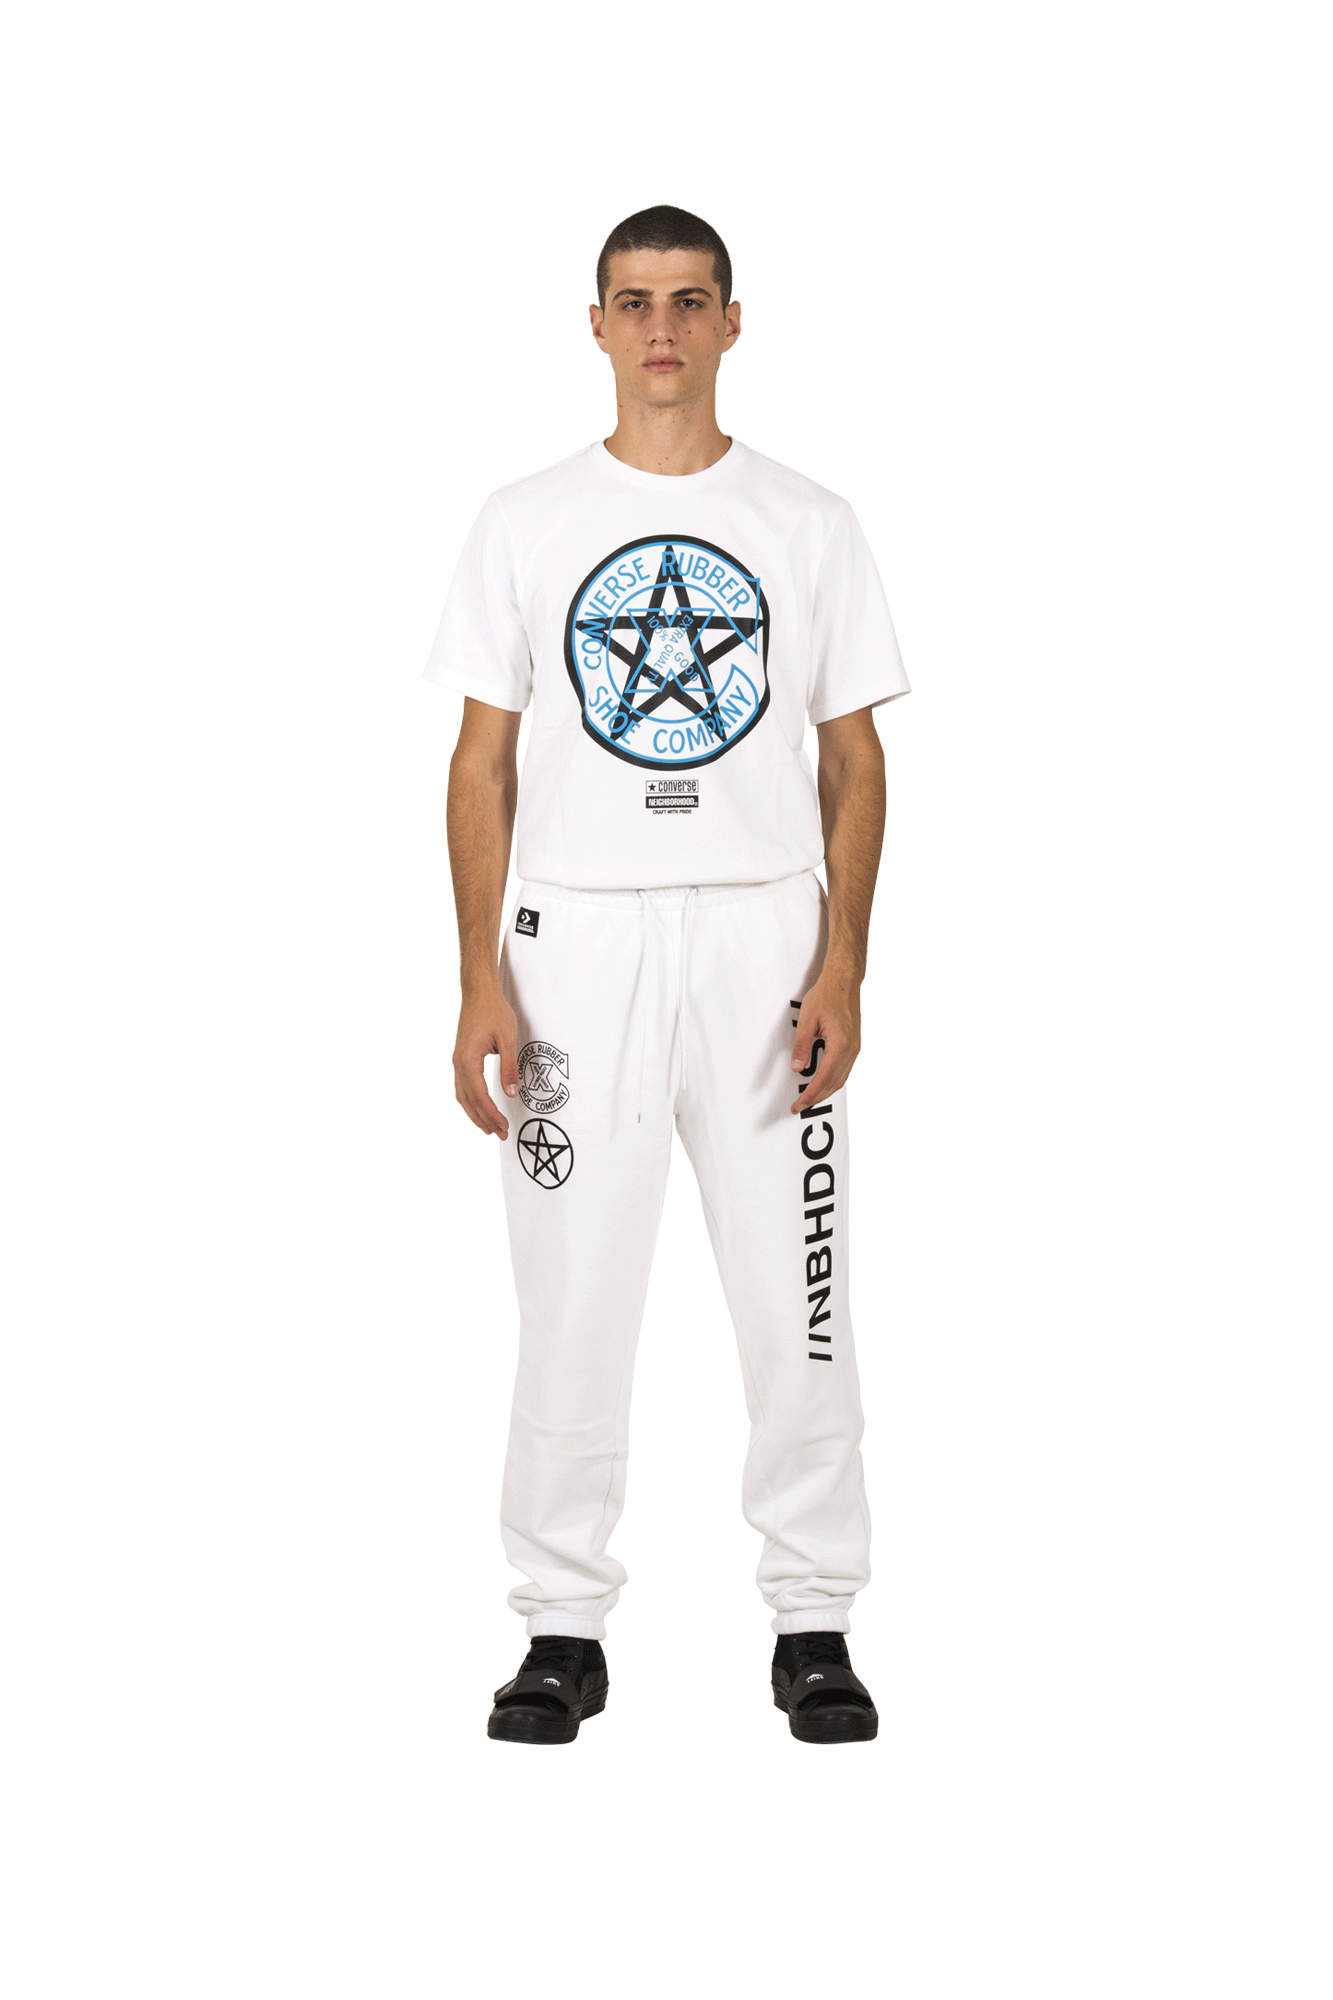 Sweatpants x Neighborhood White